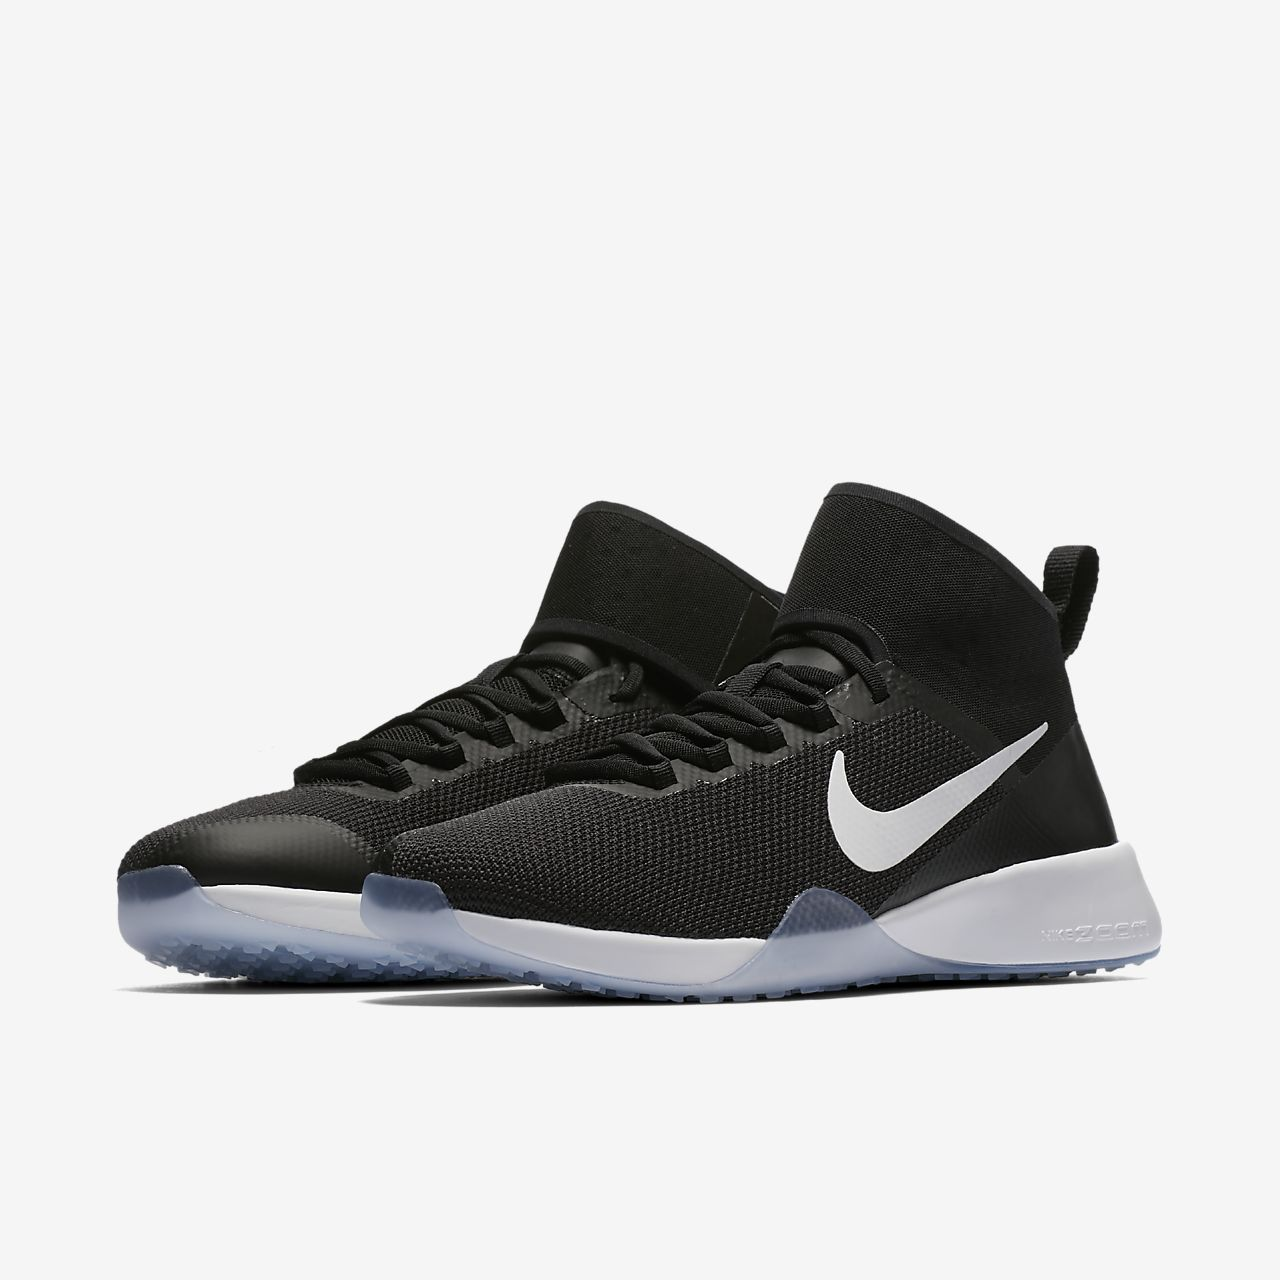 ... Nike Air Zoom Strong 2 Women's Bootcamp, Workout Shoe